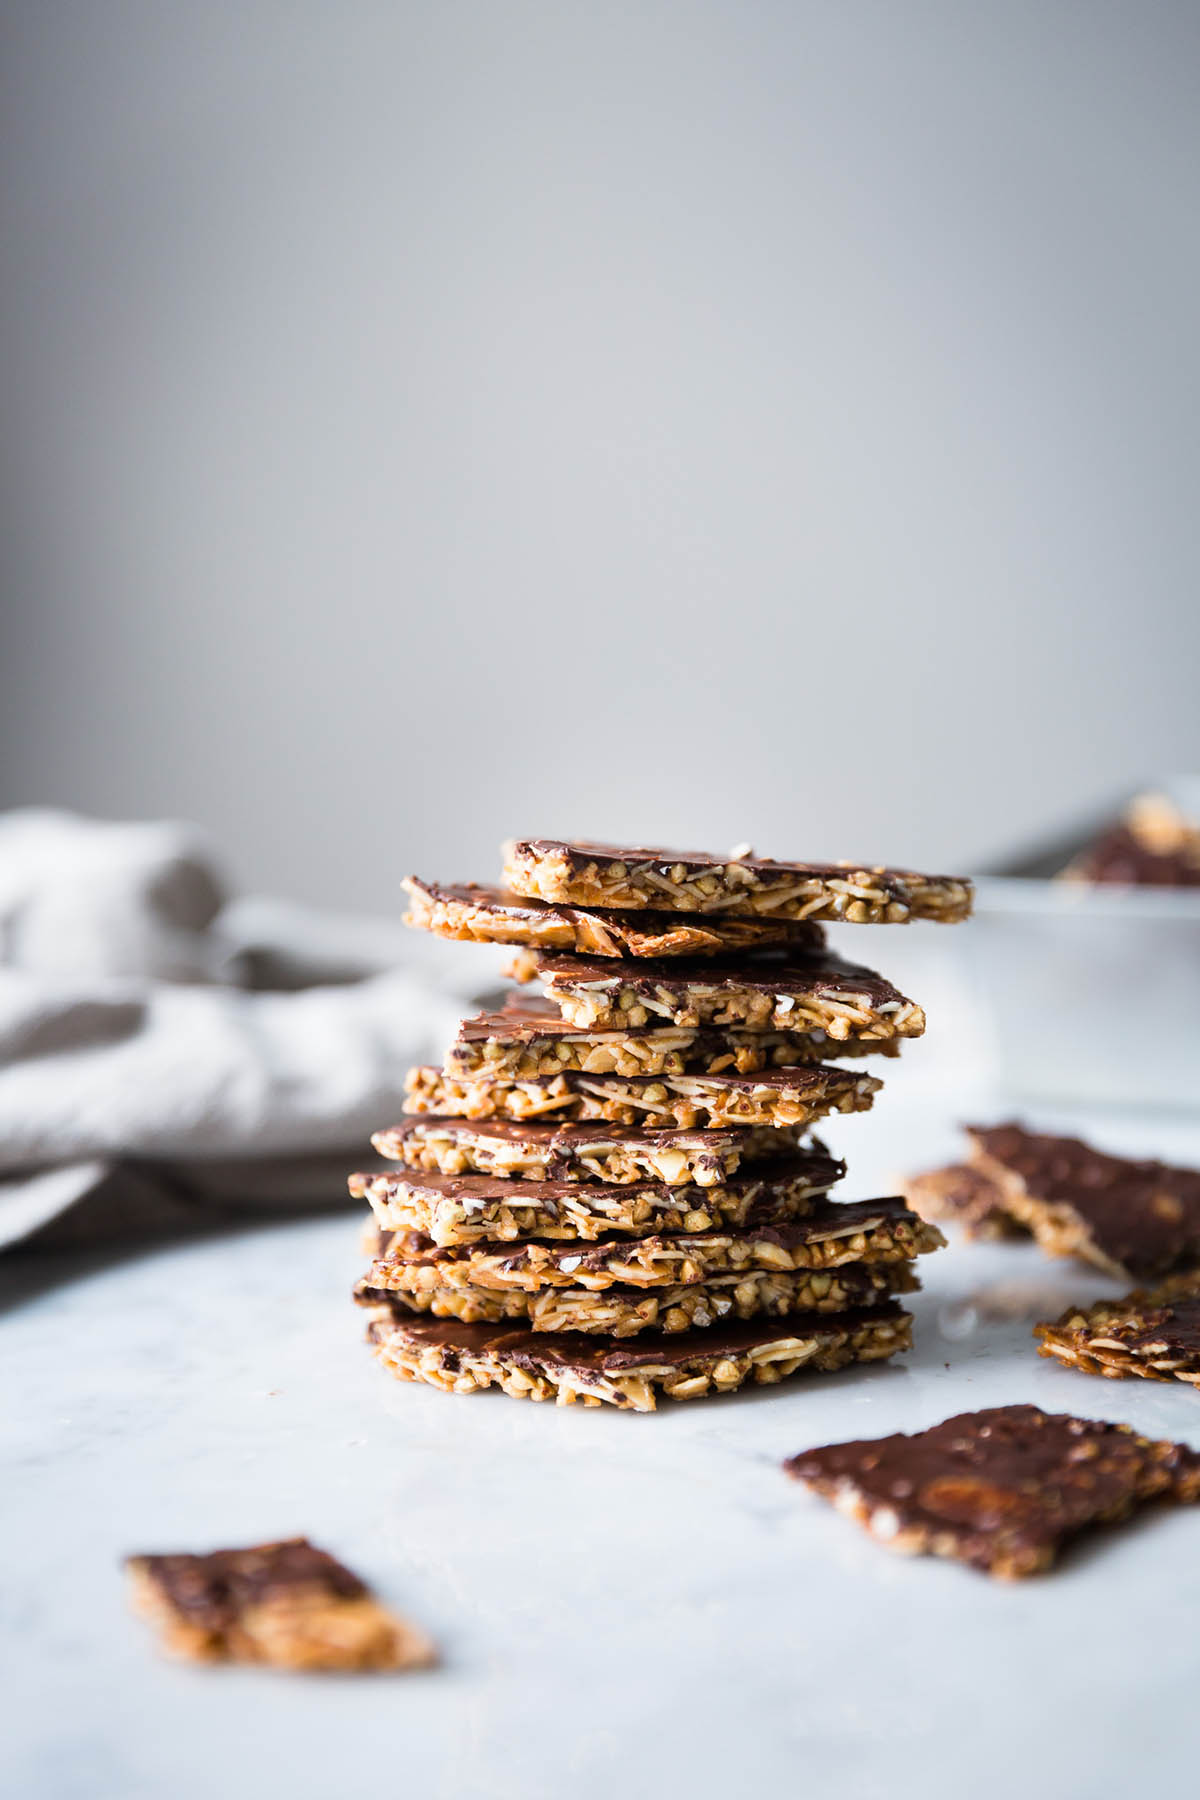 Vegan almond brittle stacked in a pile with more pieces beside.